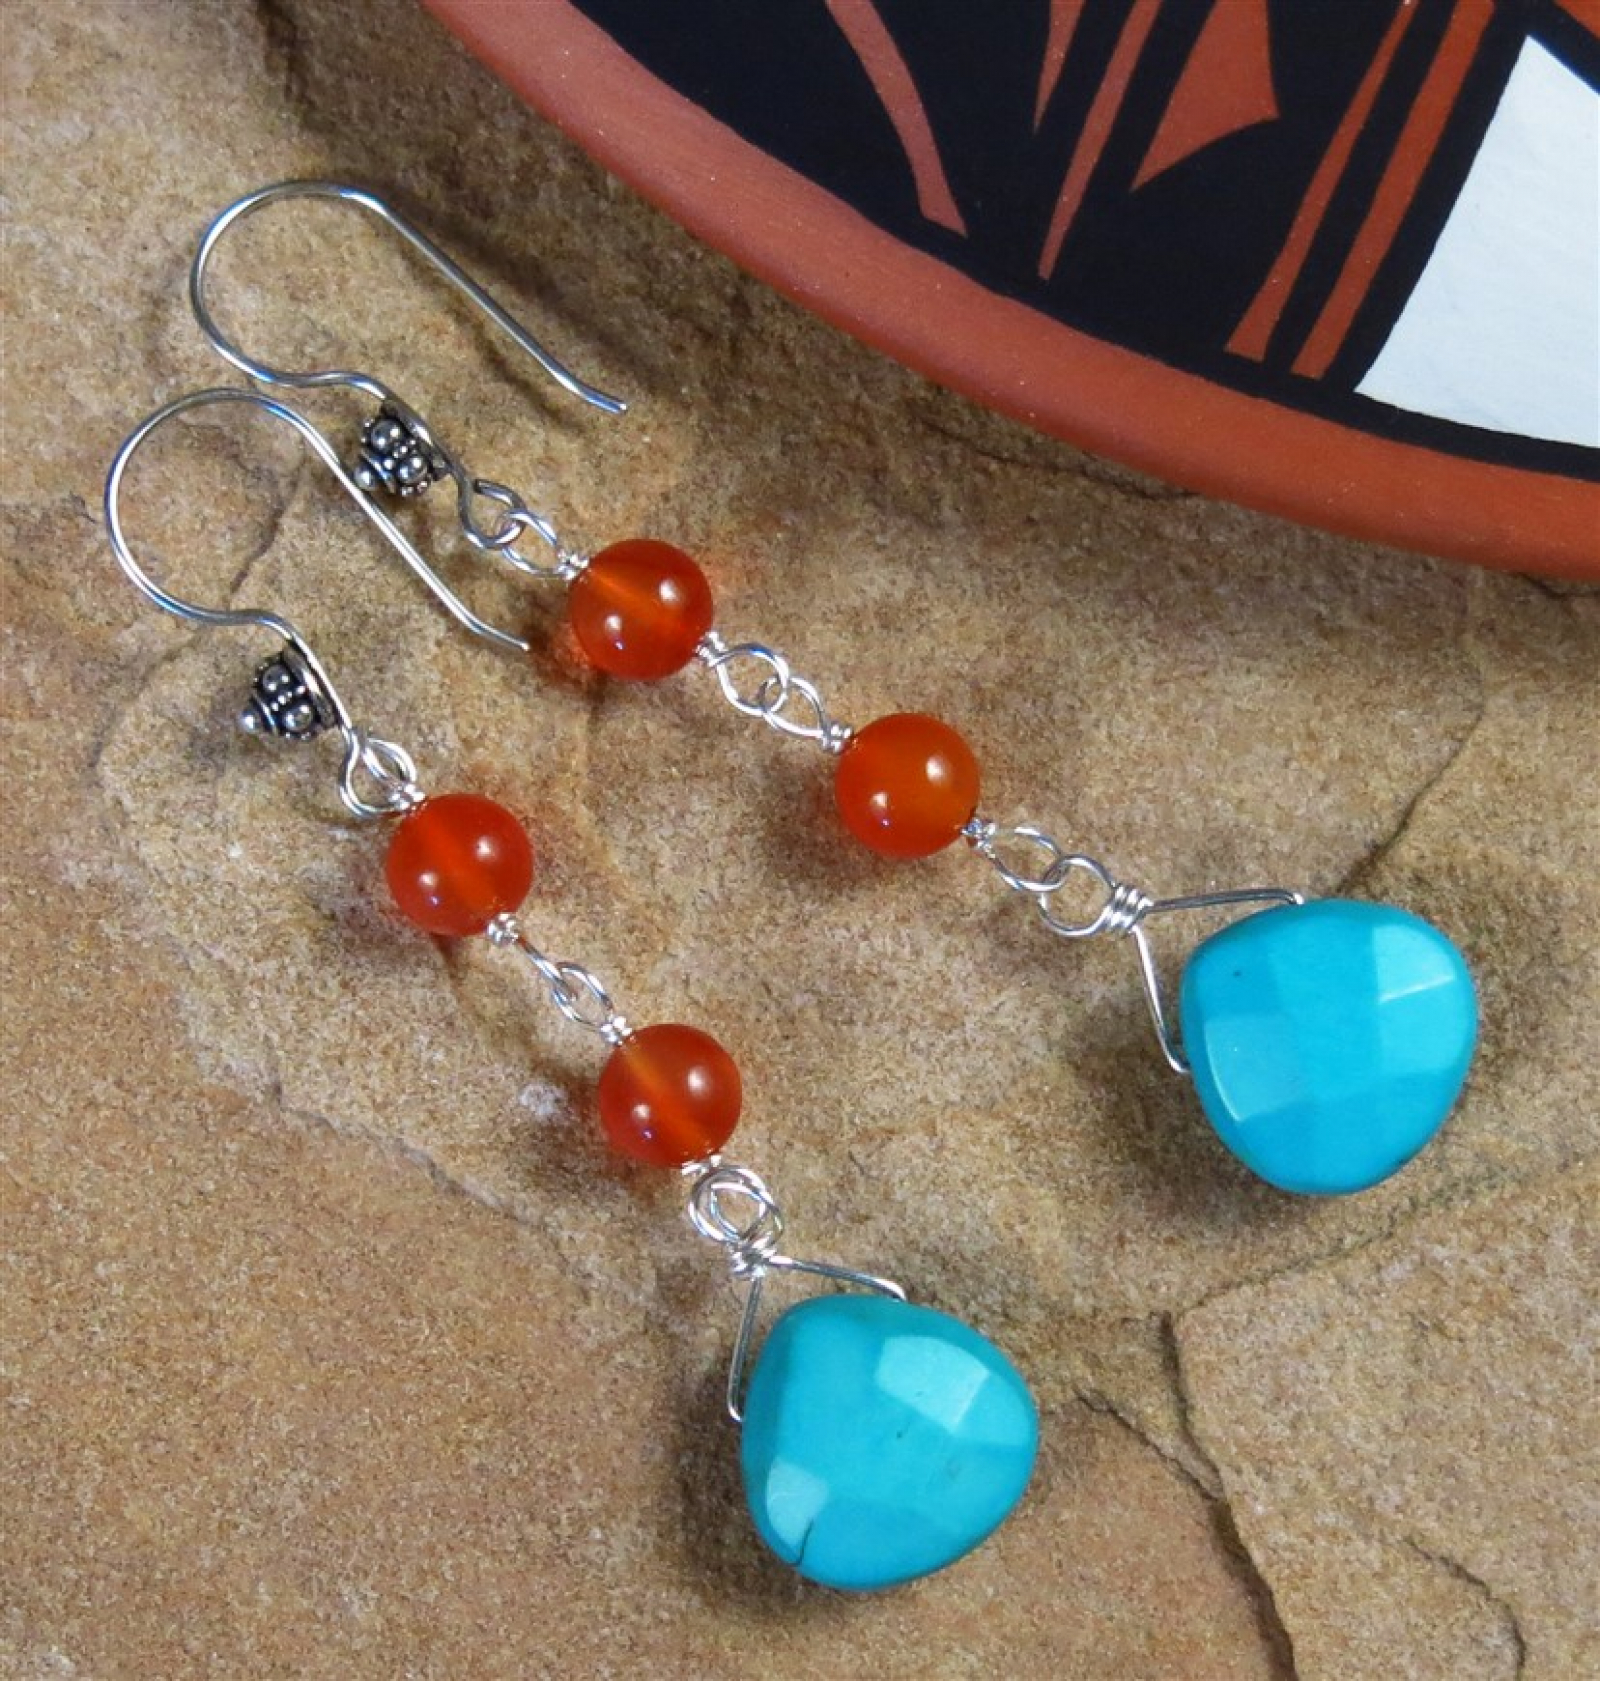 earrings naltchayan carnelian rare vahe products soldier yellow gold intaglio